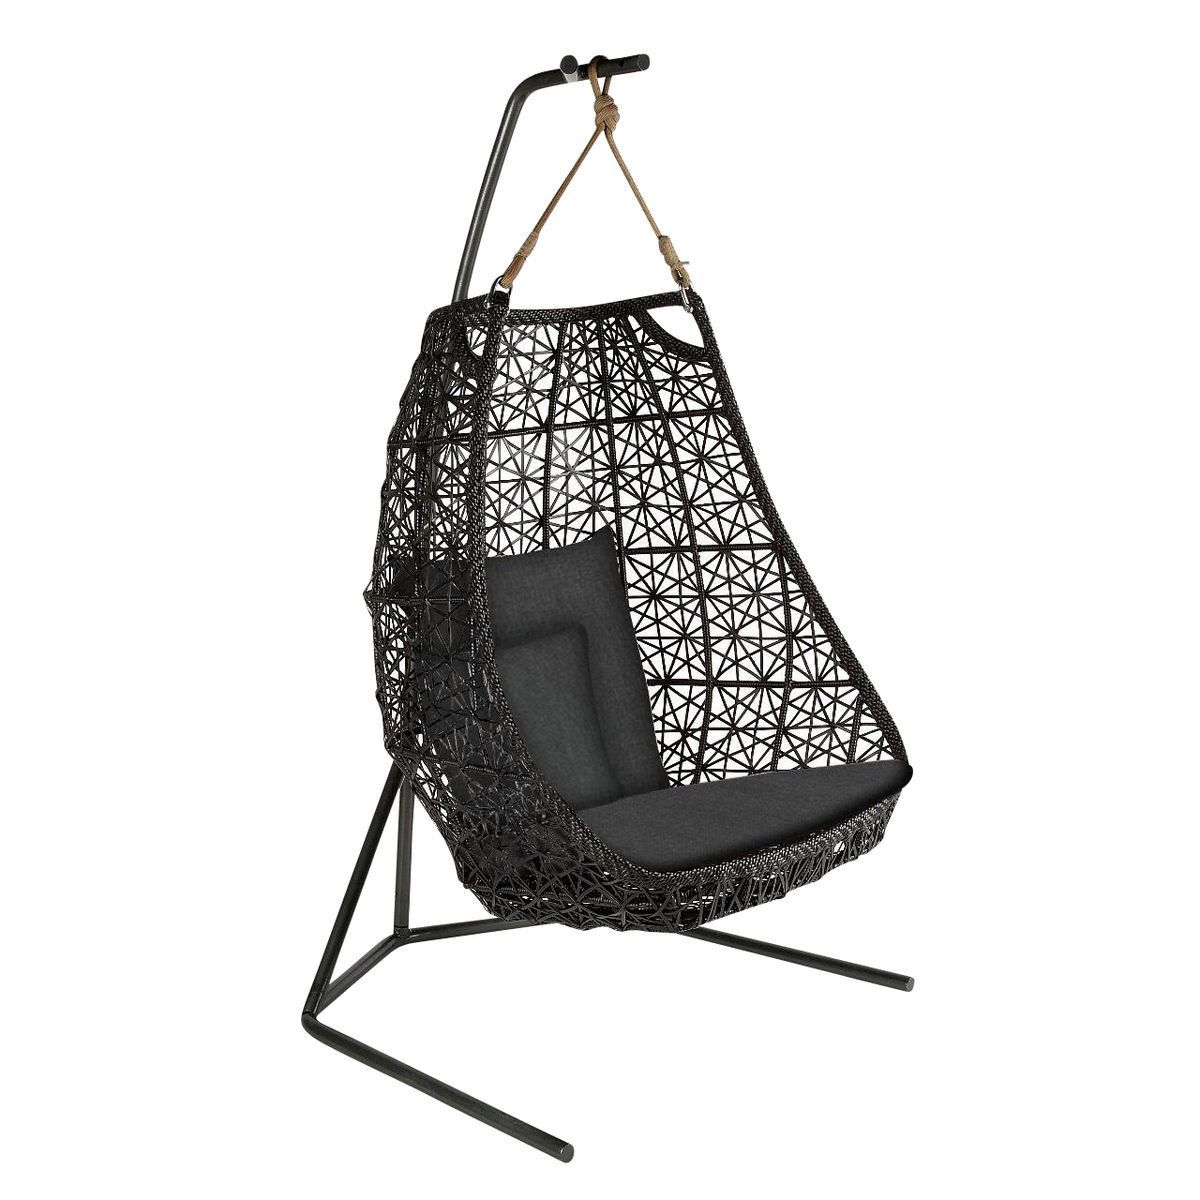 maia egg swing / hanging chair | kettal | ambientedirect